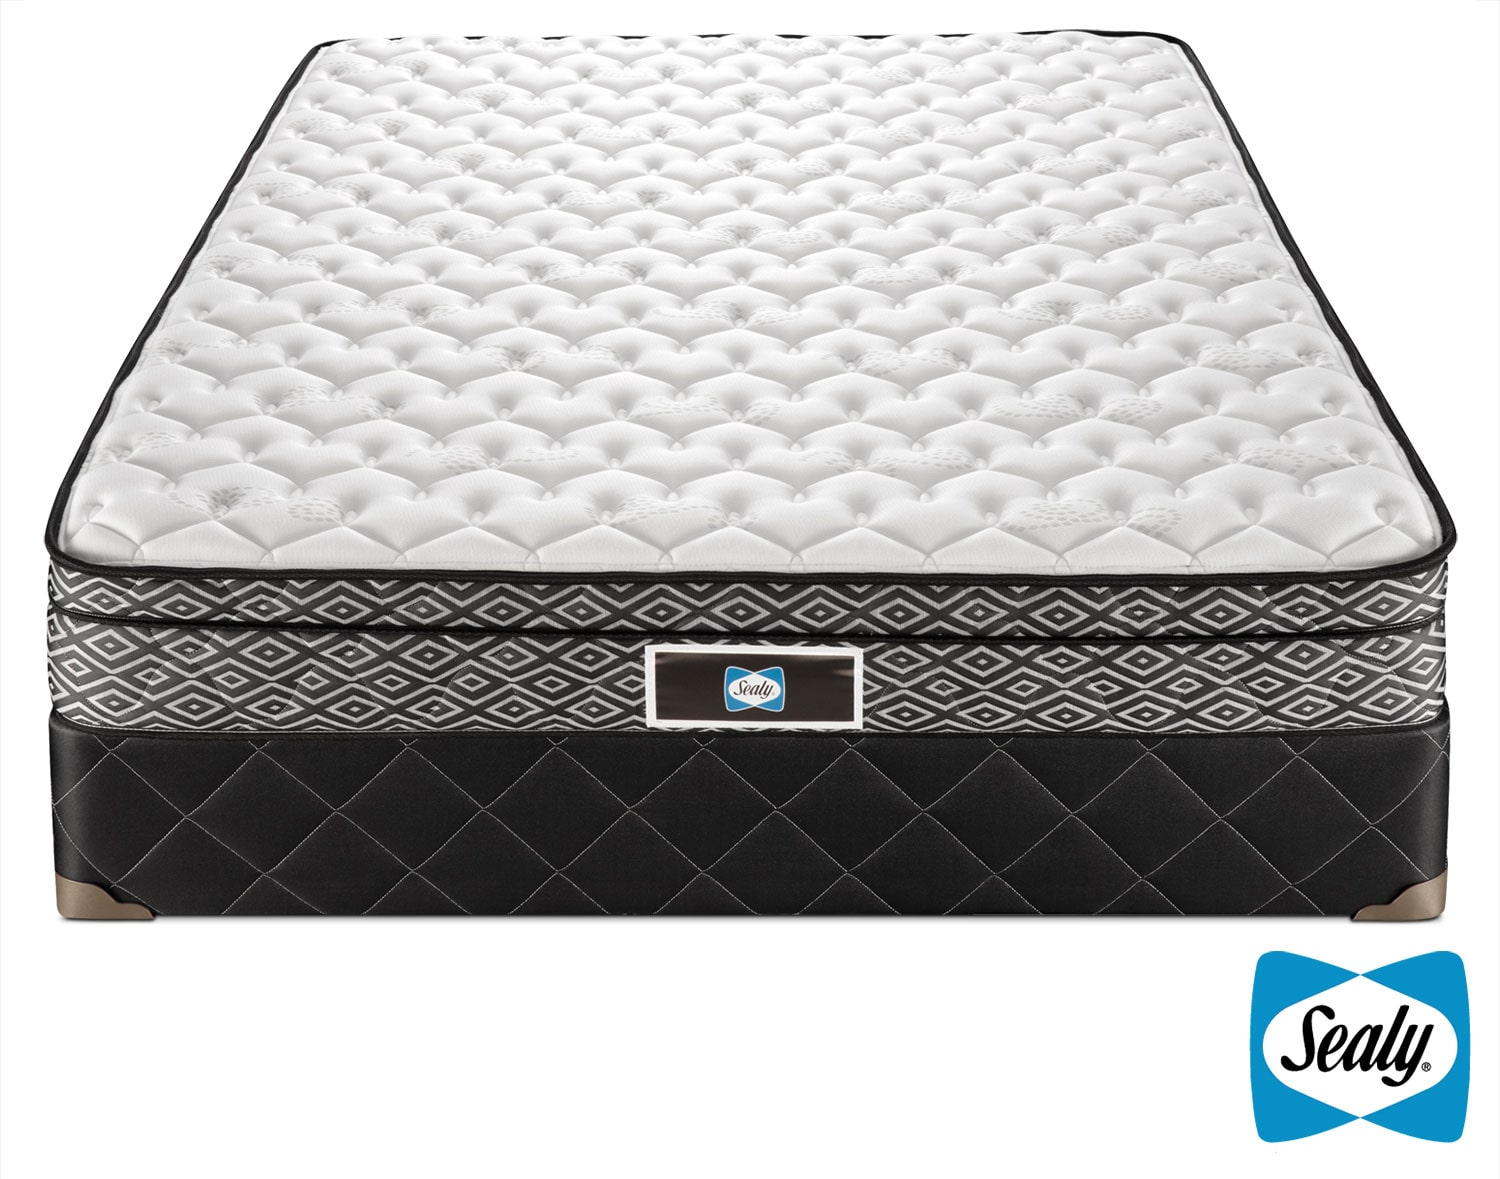 Sealy Tale Queen Mattress/Boxspring Set